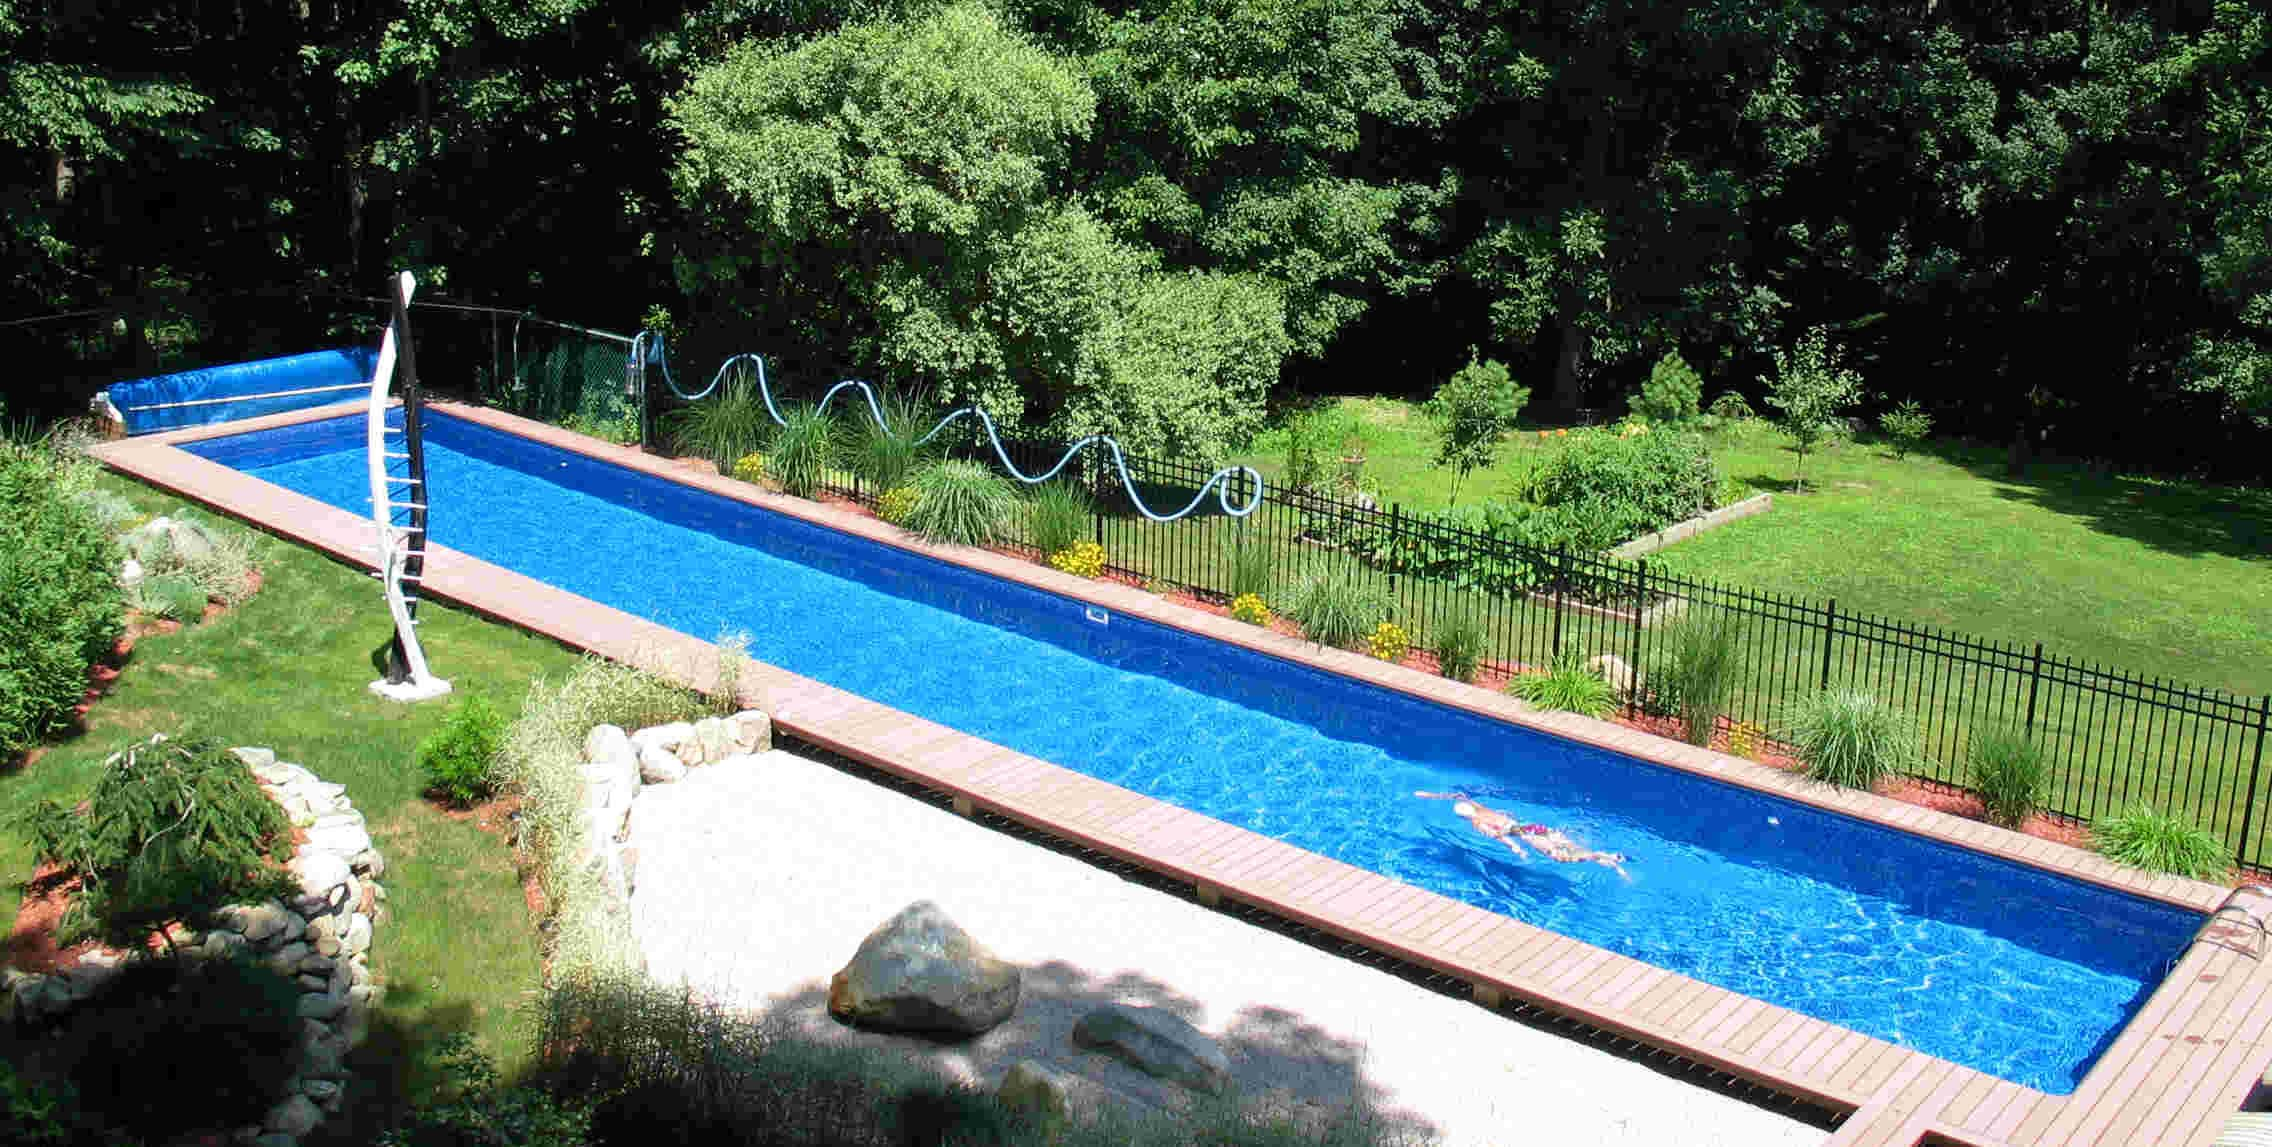 Diy inground swimming pool backyard design ideas for Inground swimming pool plans